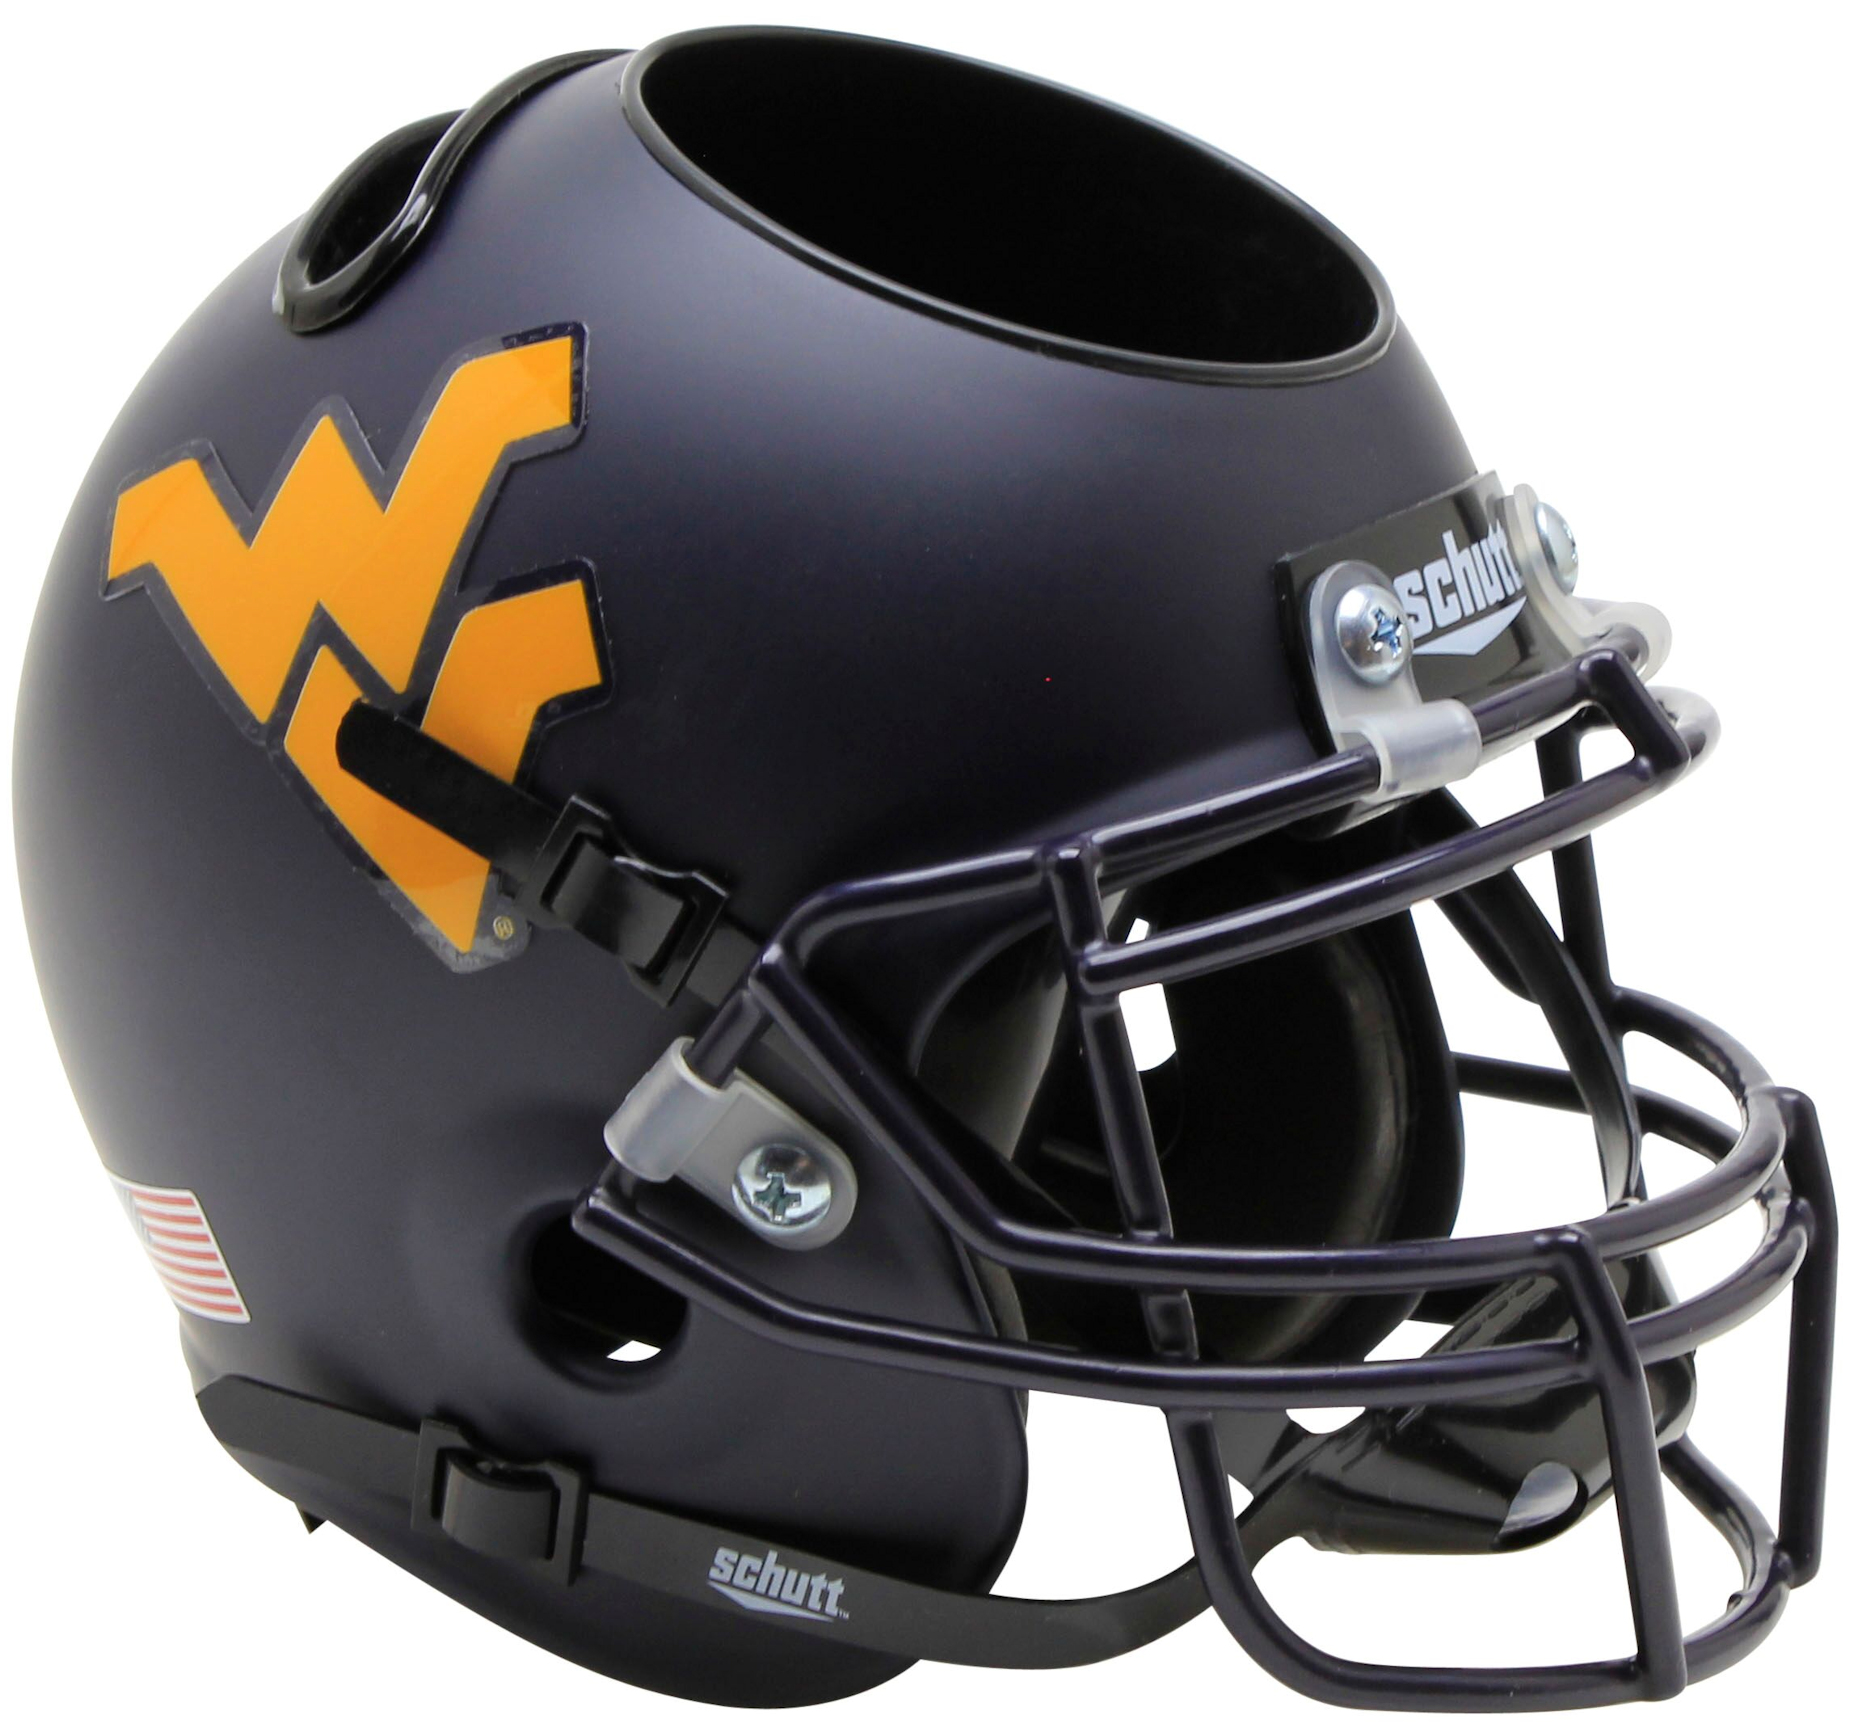 West Virginia Mountaineers Miniature Football Helmet Desk Caddy <B>Country Roads Bumper</B>